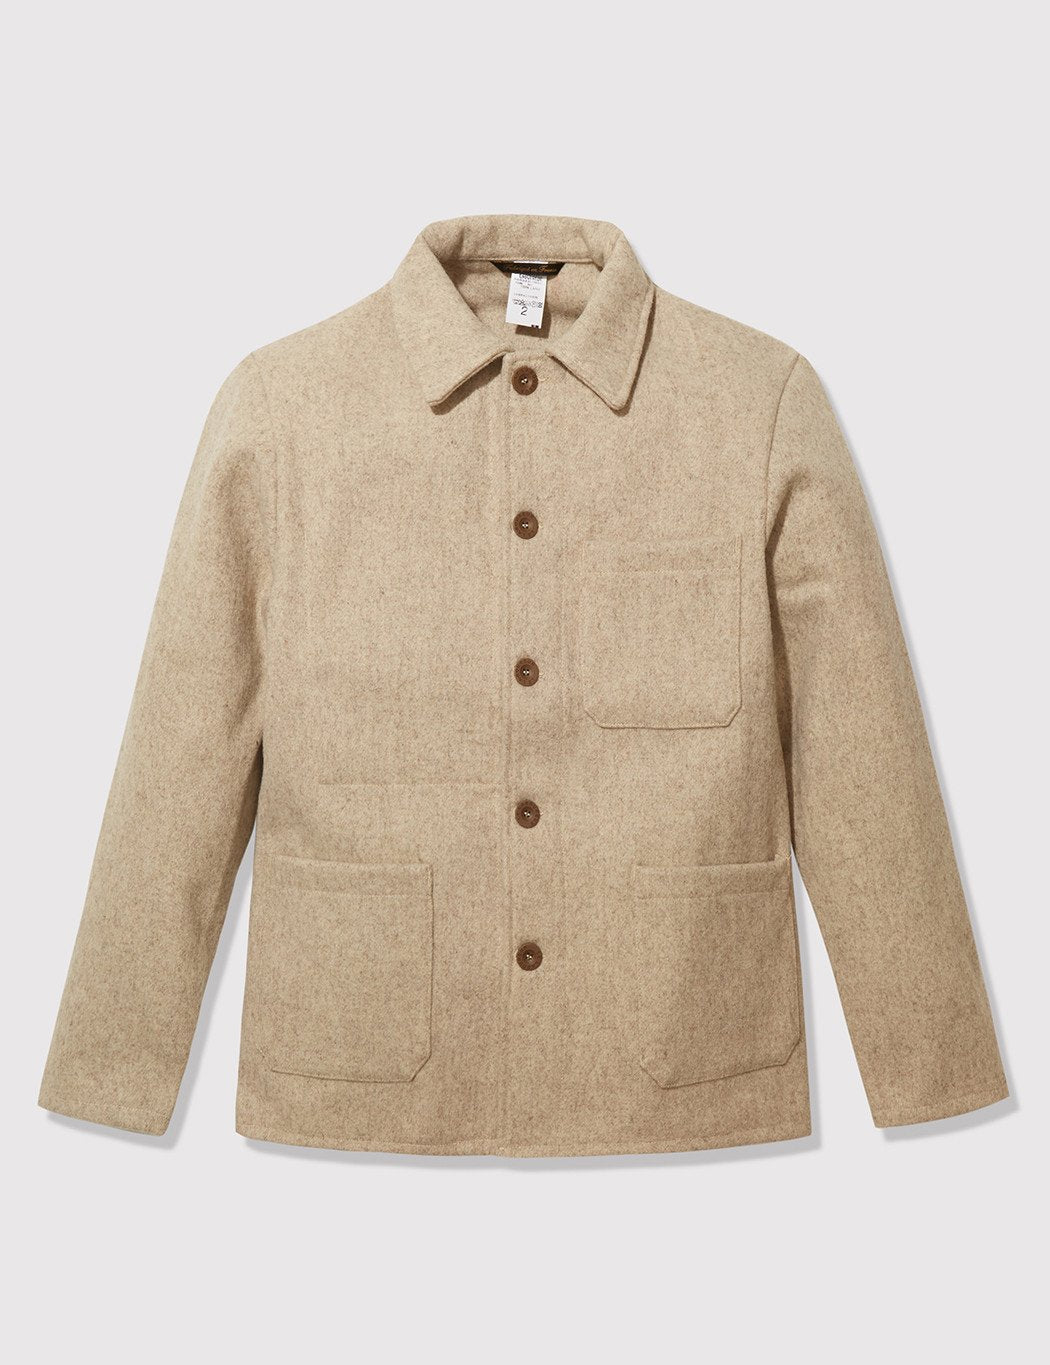 Le Laboureur Burel Wool Work Jacket - Beige